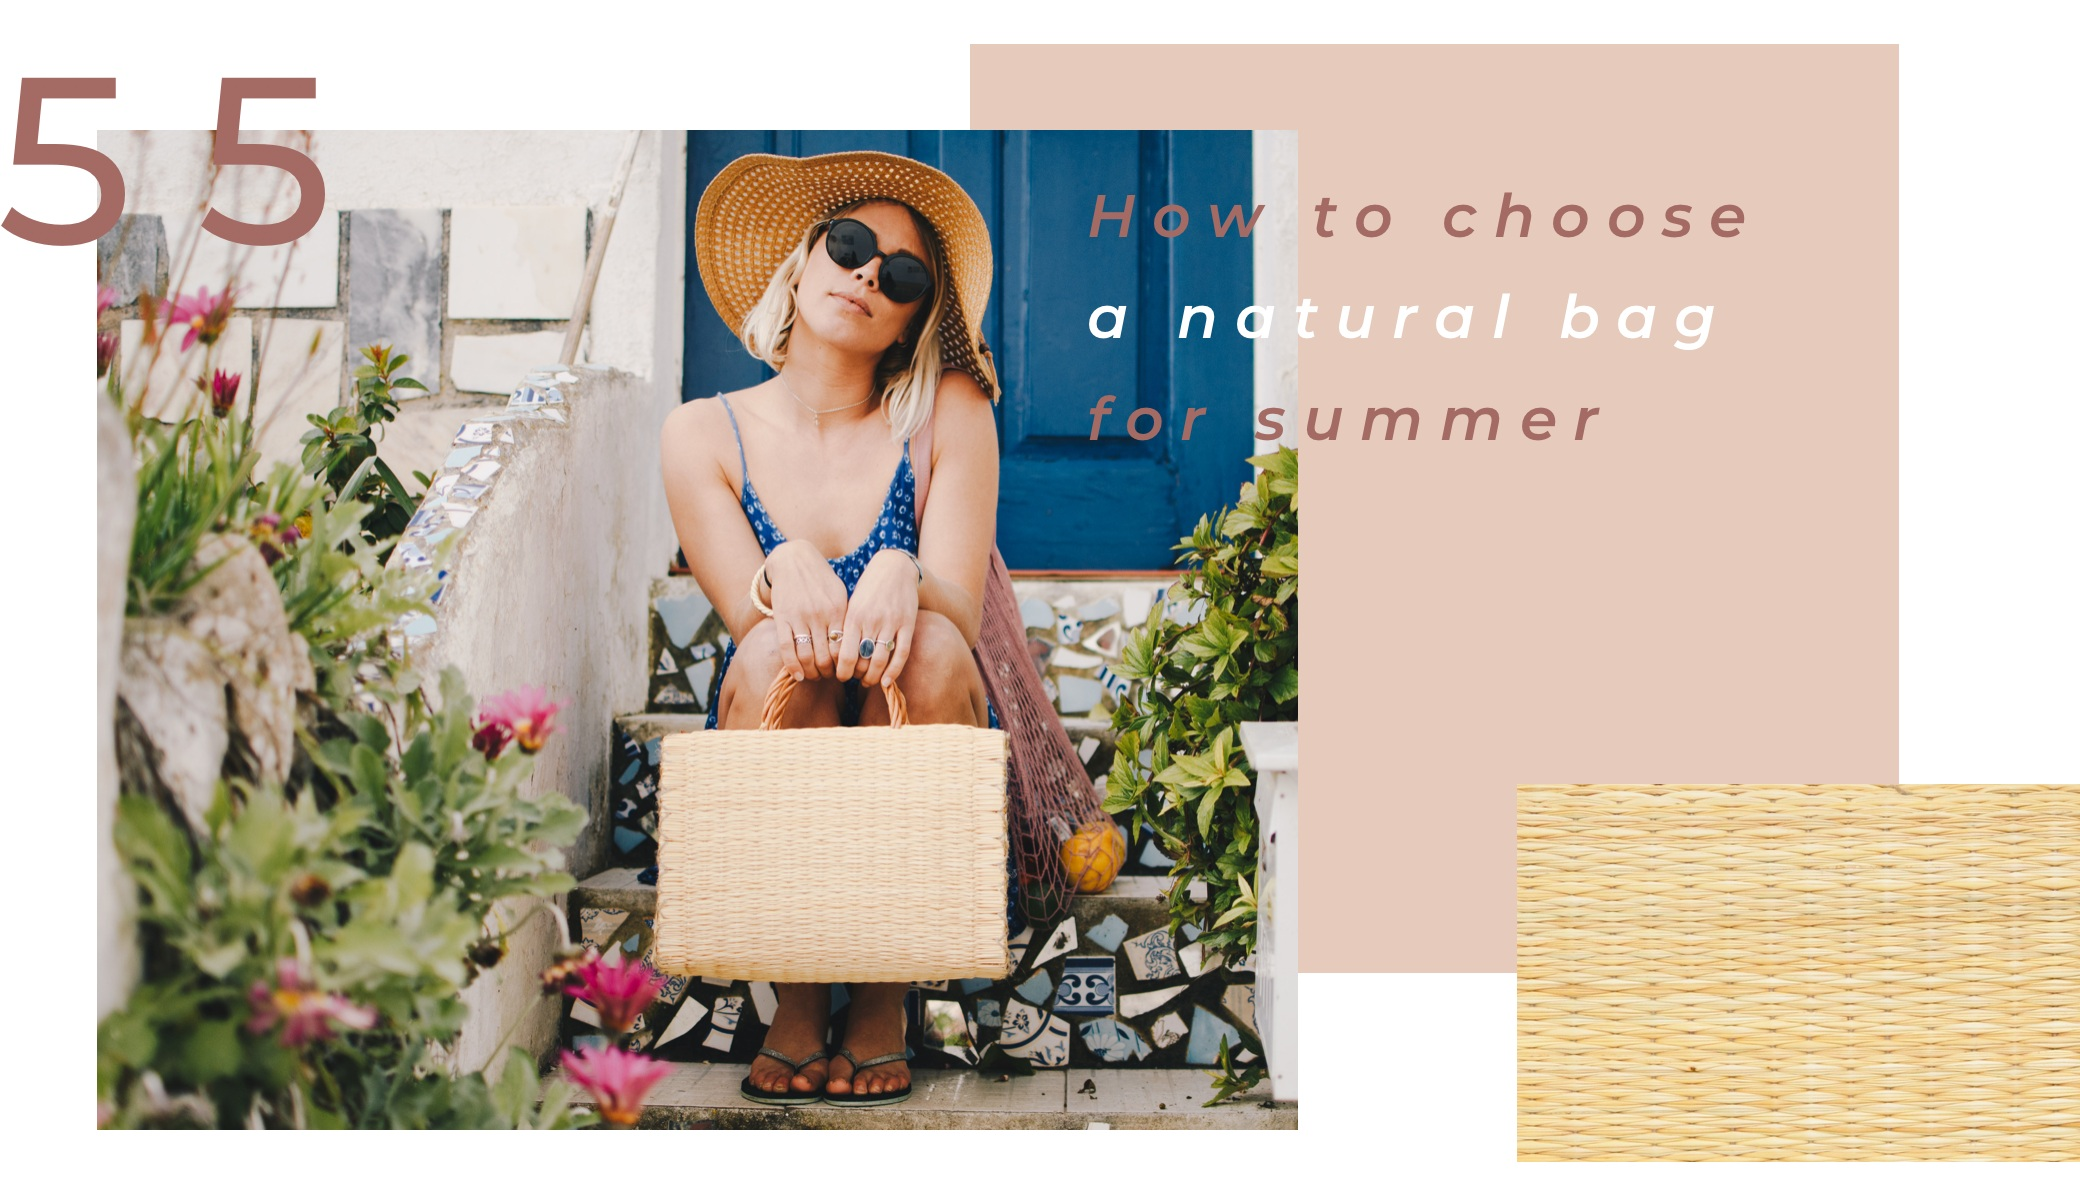 How to choose a natural straw bag for summer | Soi 55